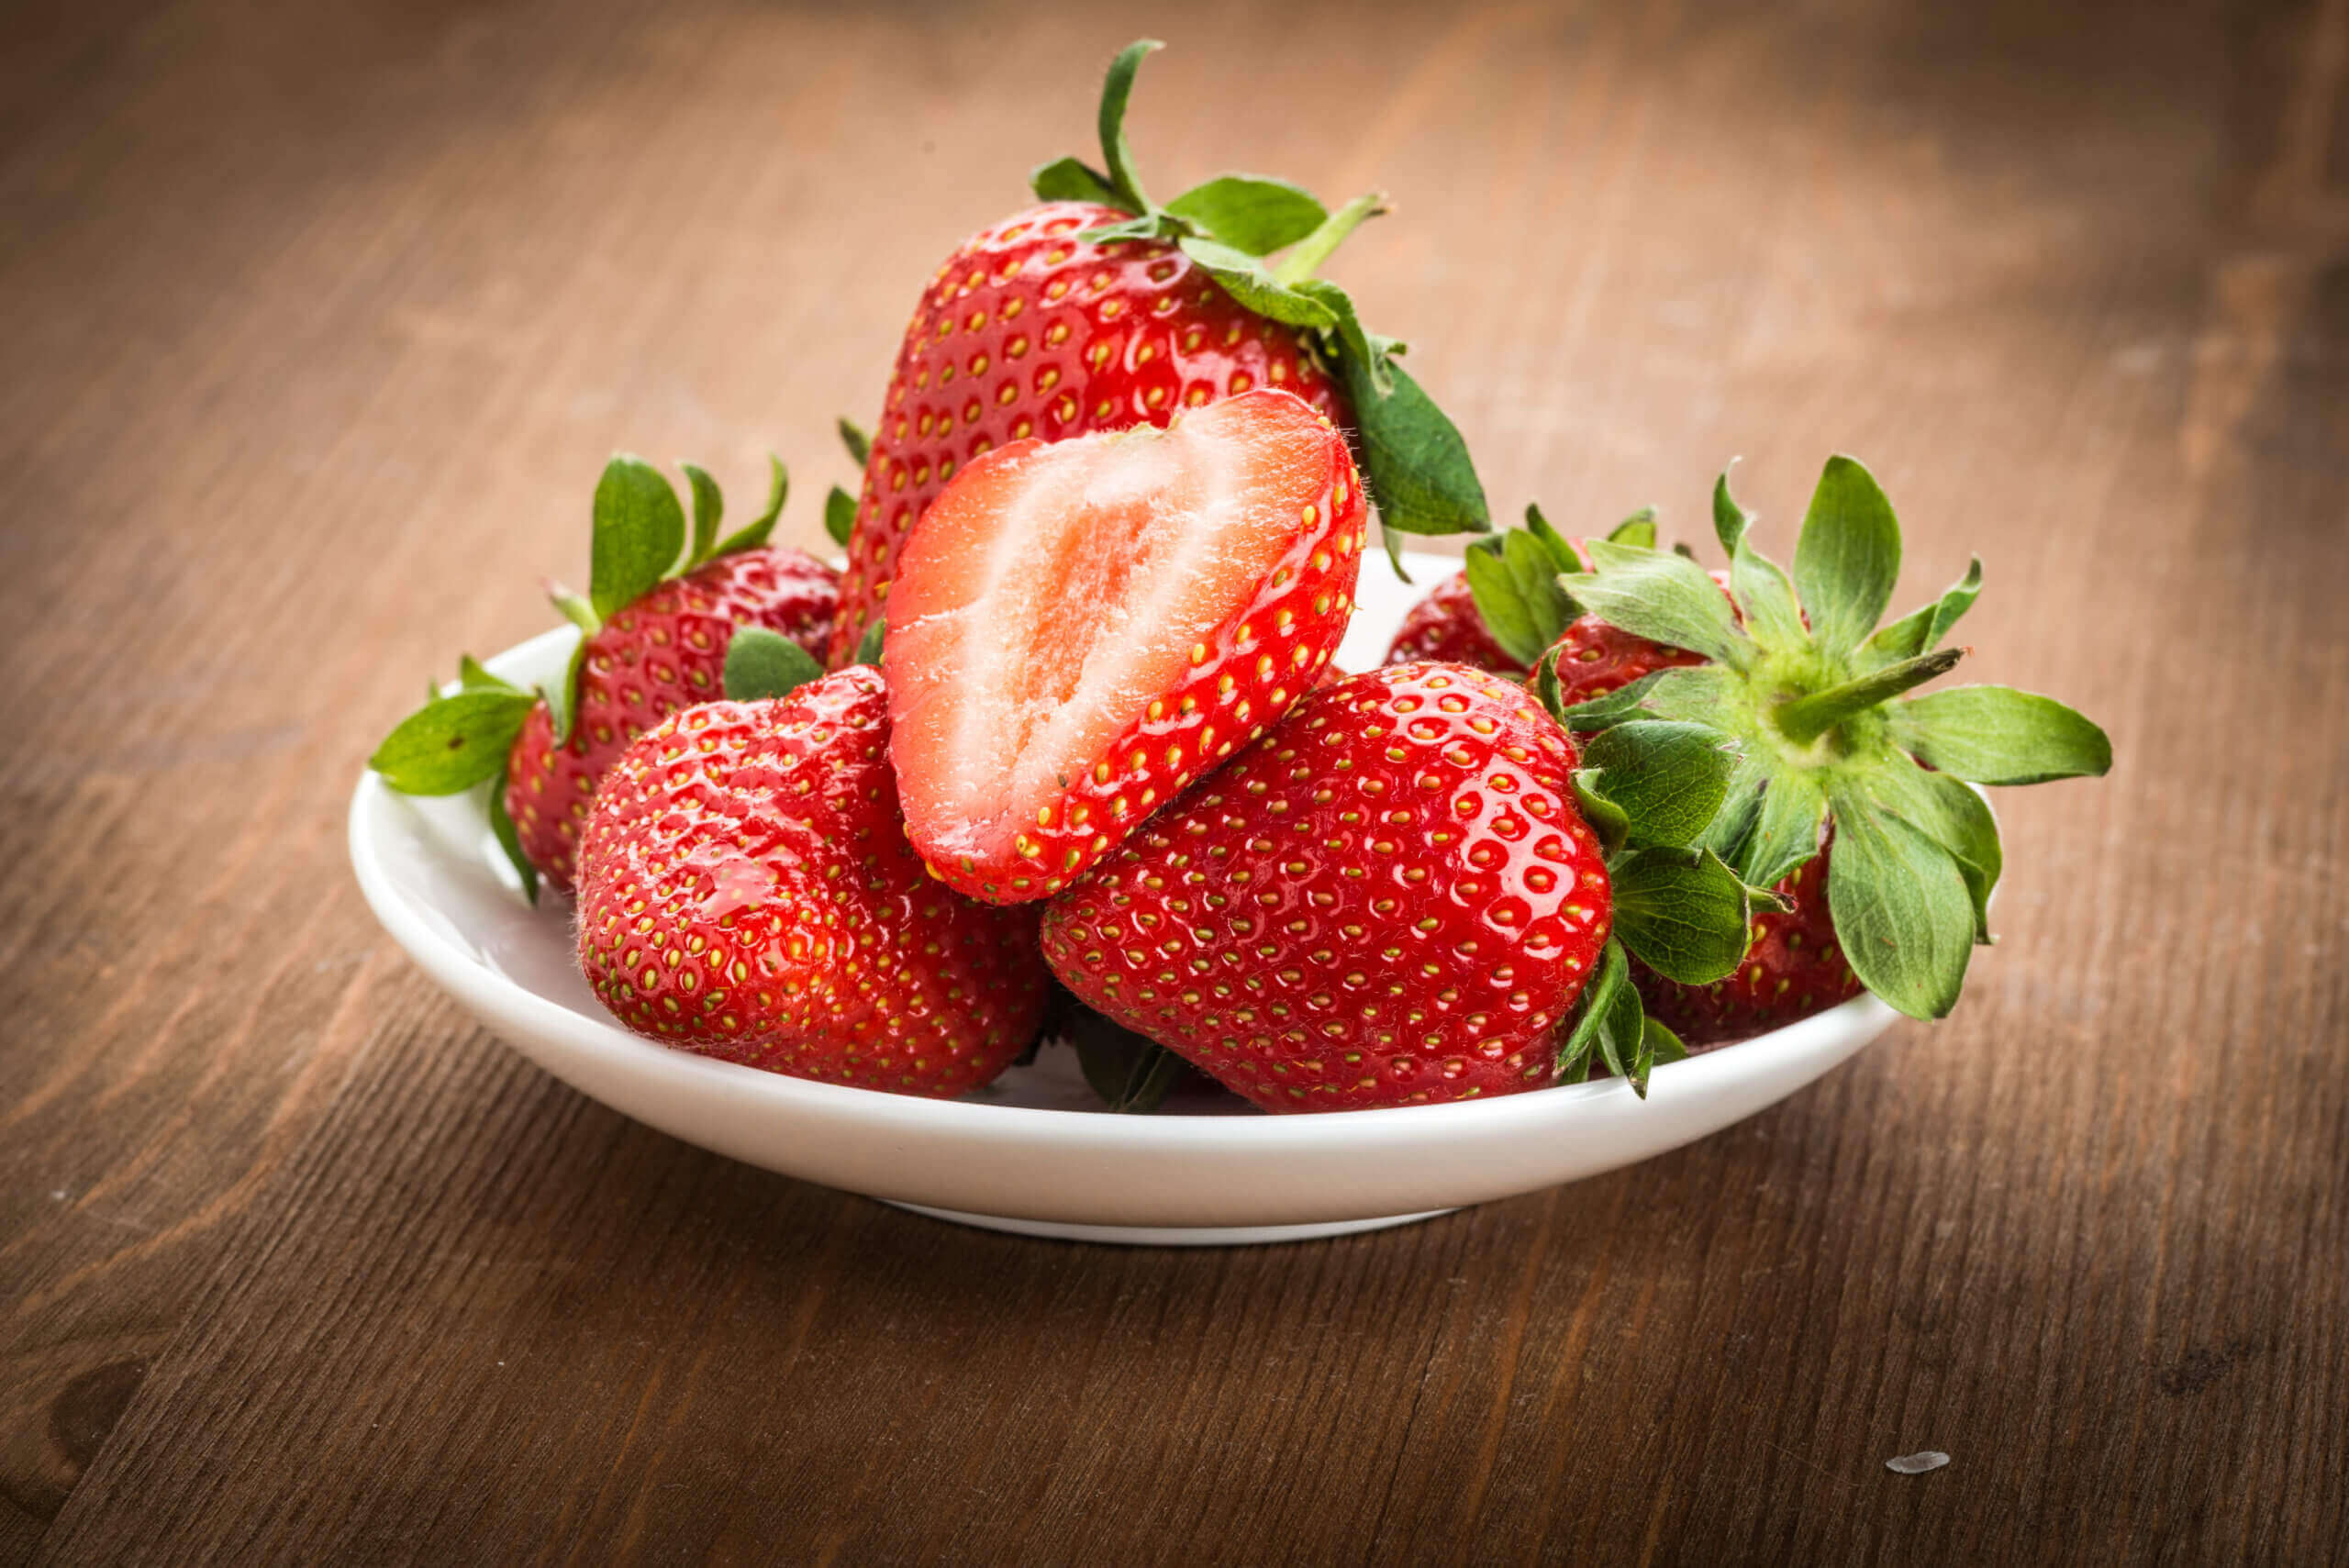 A plate of fresh strawberries.